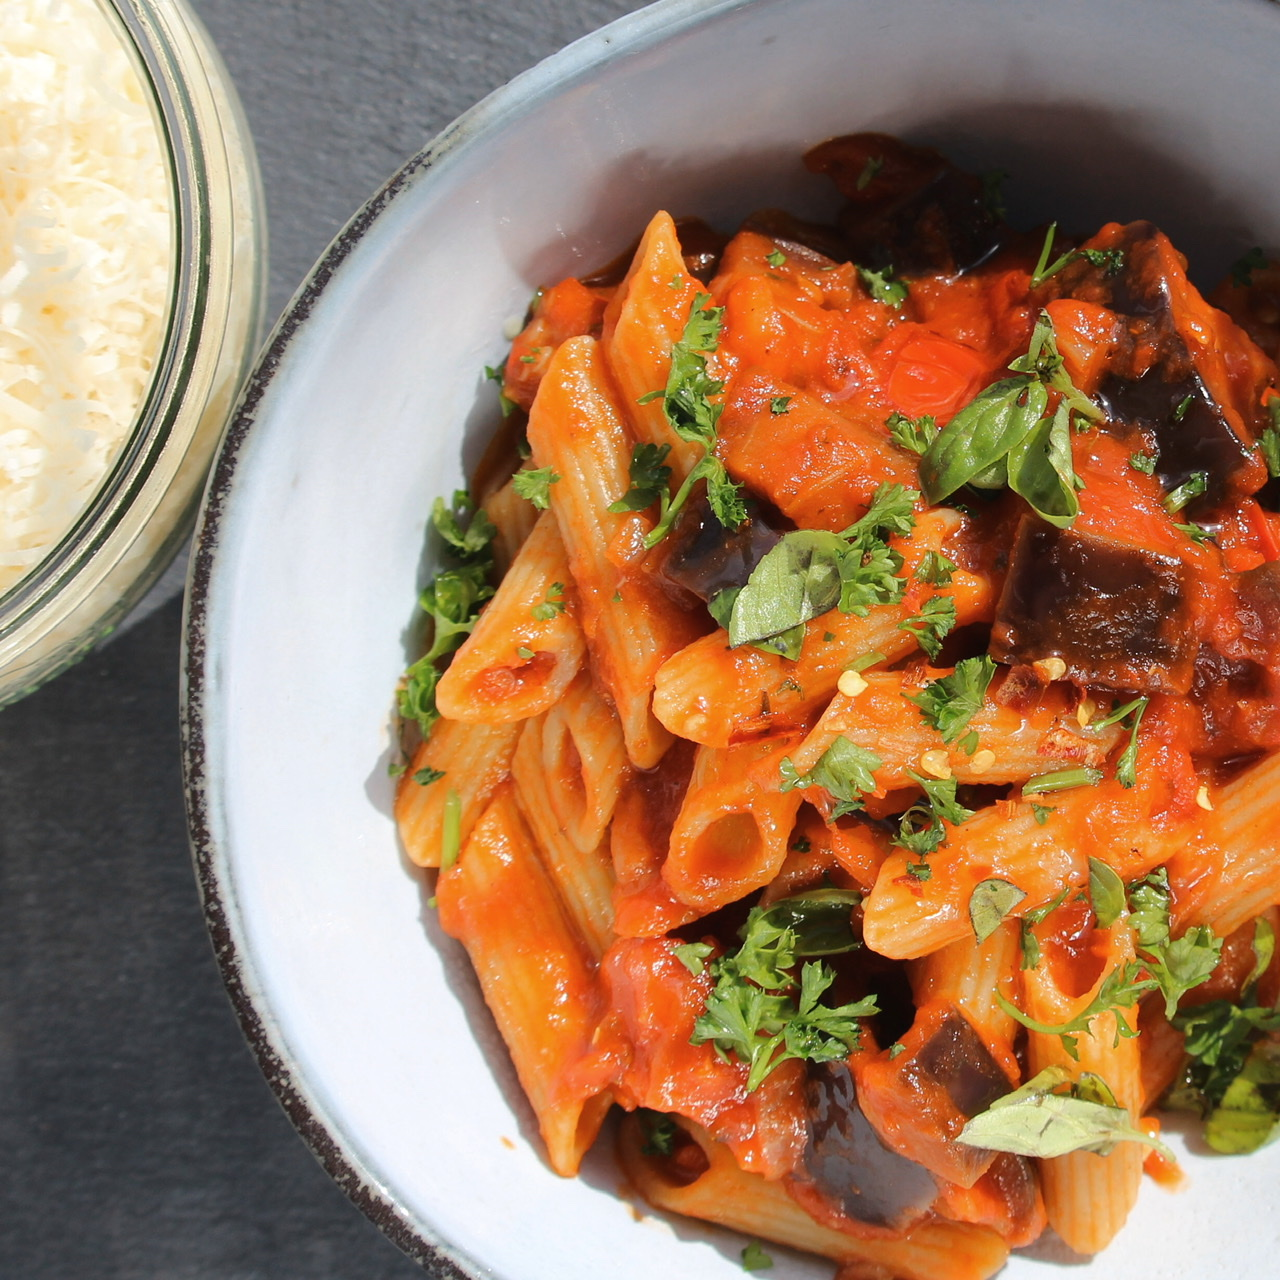 Spicy Eggplant and Pasta with Pancetta in a white bowl